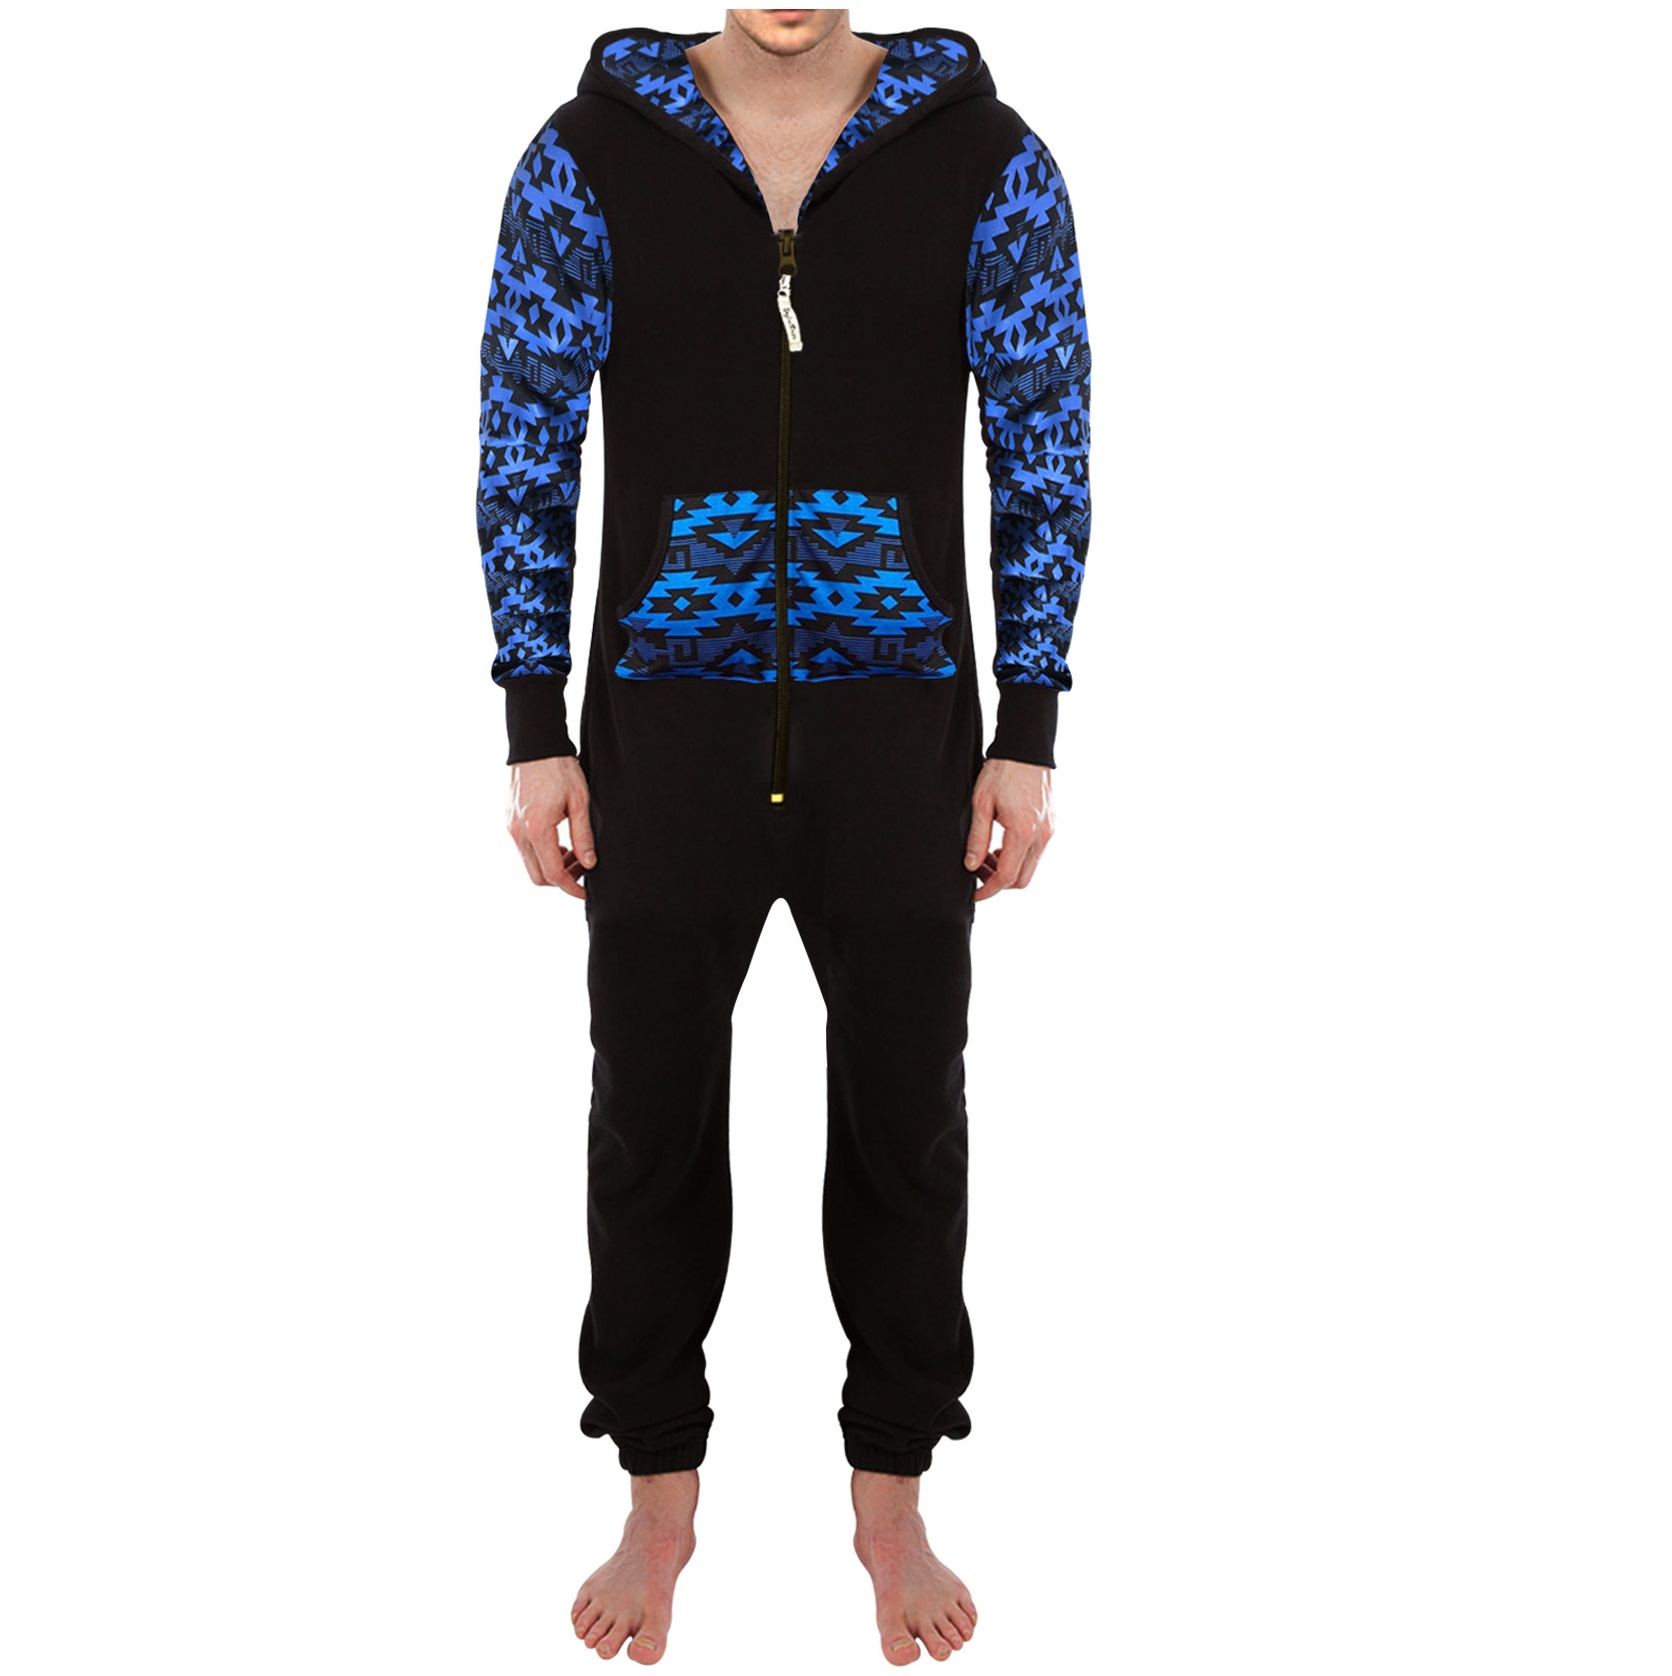 464ac113ac16 Mens Black Blue Arms One Piece Zipper Hoodie Playsuit - Skylinewears